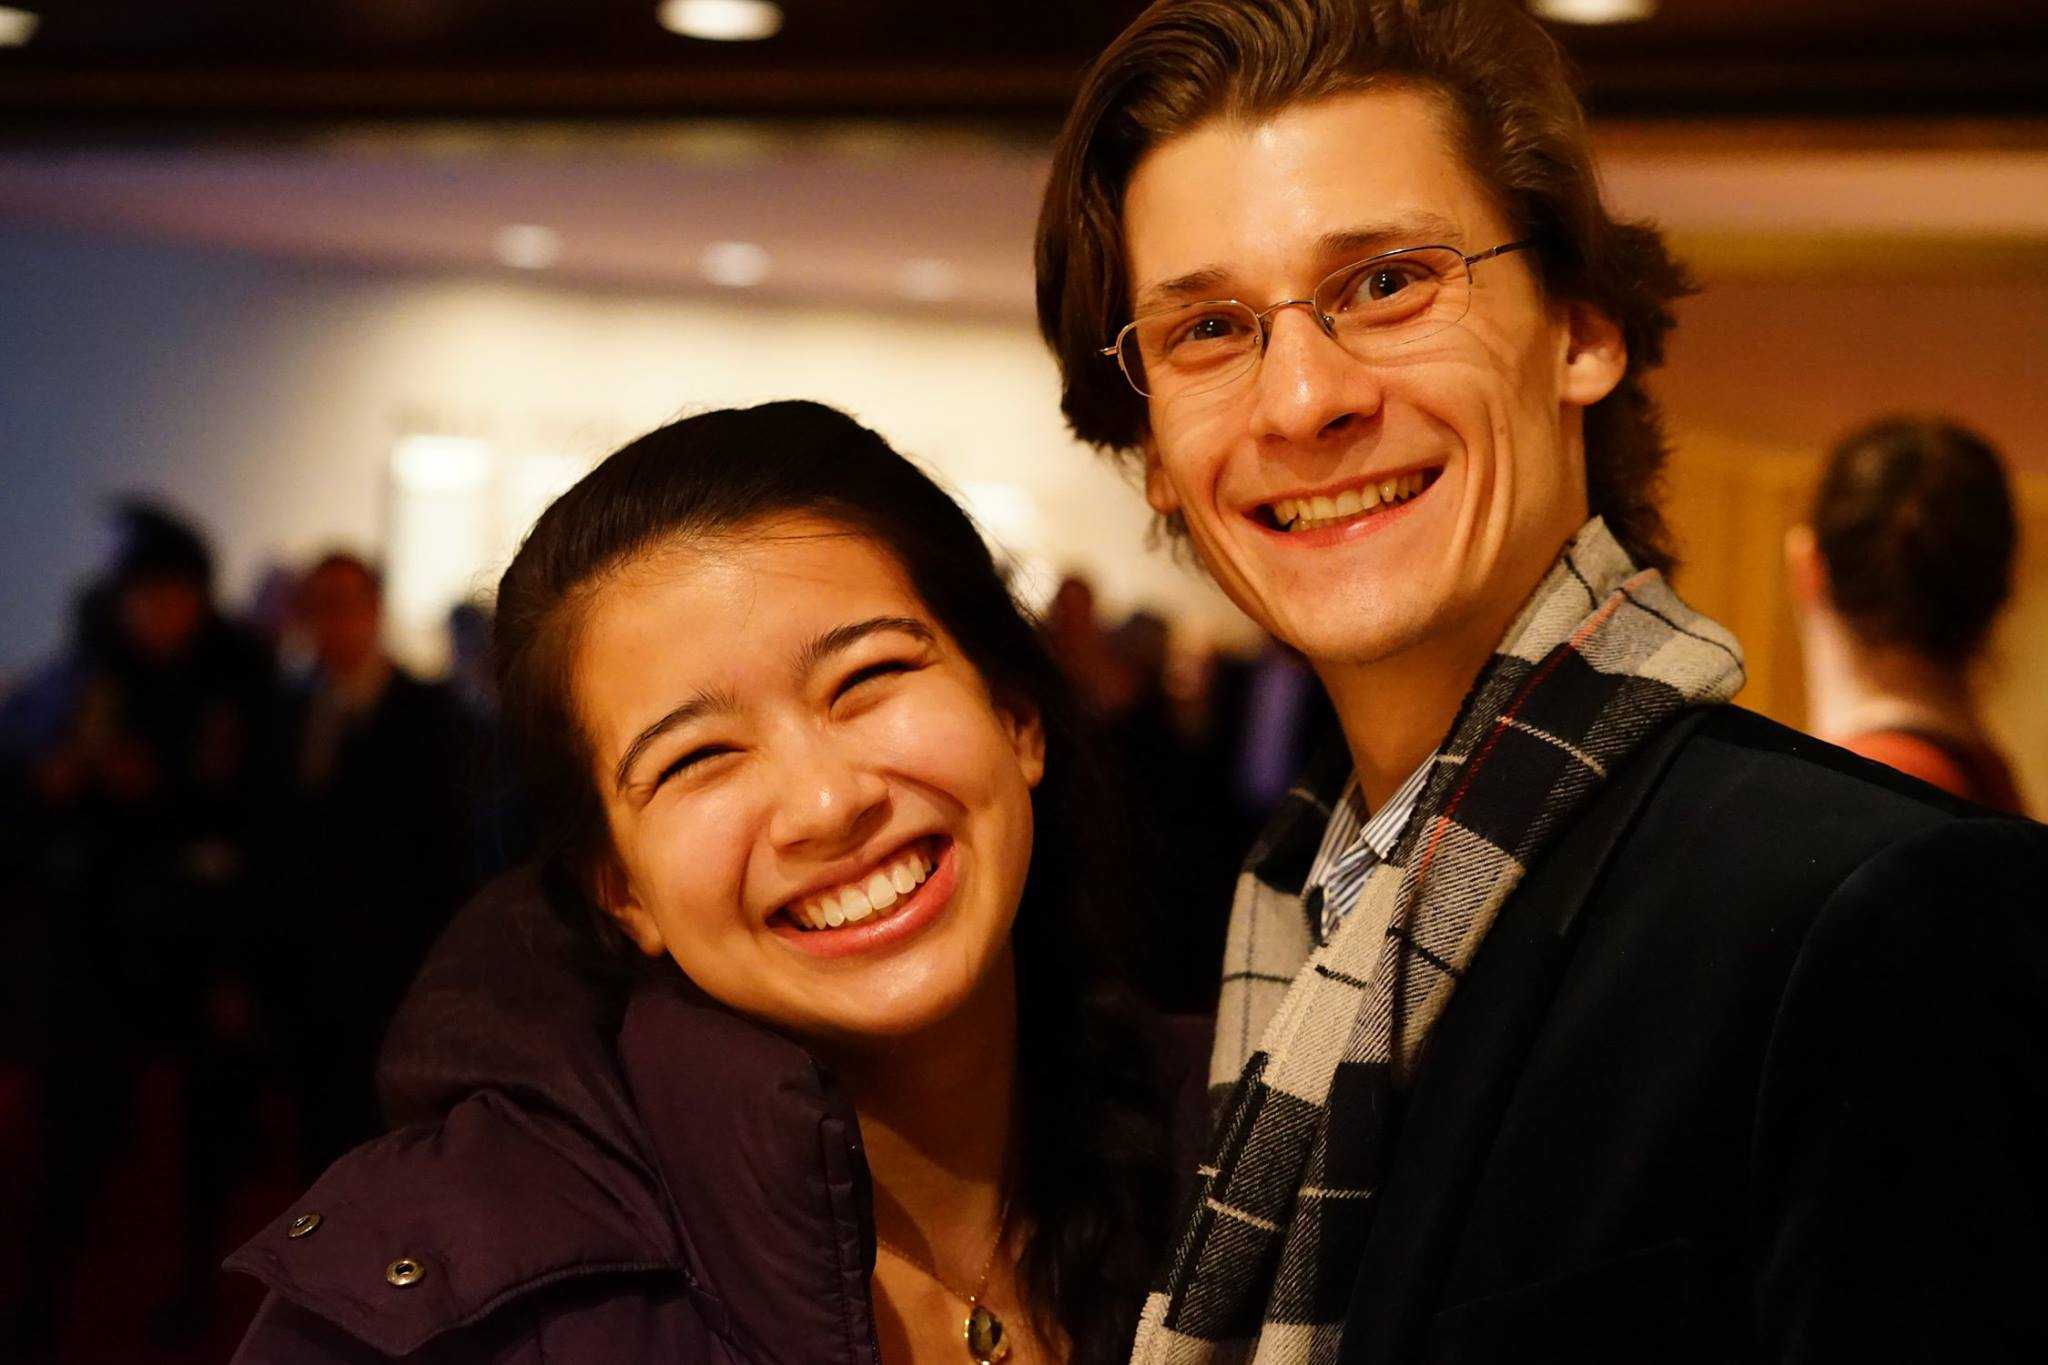 Owners: Ian & Sarah Antal - …In pursuit of a dream to create an arts center, Mr. & Mrs. Antal began aspiring to this dream from almost the first day they met. Driven, focused, and filled with this joyous passion for performance, their dreams become more of a reality each day.Sarah Antal grew up in Baltimore, MD where her passion for dancing began when she took her first ballet class at 2 years of age. She began her formal training at the Peabody Preparatory Dance Program, located in the Peabody Conservatory of Johns Hopkins University. She continued her pre-professional training at the Baltimore School for Arts and the University of North Carolina School of the Arts where she performed works by Alvin Ailey, Jerome Robbins, Twyla Tharp, Ethan Stiefel, and Mark Morris. Sarah graduated magna cum laude from Marymount Manhattan College with a BFA in Dance and a concentration in Ballet. While training at Marymount, she gained experience as a choreographer, and several of her works have been presented at MMC Honors Day, Dancewave Kids Cafe Festival, and In-Sight Dance Company's Suite Summer Festival. Sarah has been the ballet instructor at City Center Dance for the past 5 years while also teaching at several studios throughout New York City. Her passion for teaching grows with every year that she is able to share the joy of dance and the arts with so many wonderful students.Ian Antal was born and raised in Berlin, Germany, and began his theatrical career at a young age, starring in various productions at the German State Opera and the Marlene Dietrich Theater, including Elliot Carter's What Next? and Erich Kaestner's Emil und die Detektive - Das Musical. Upon receiving his BFA in Drama from University of North Carolina School of the Arts in 2010, he became a teaching artist and toured with the educational theater troupe, Open Dream Ensemble. After moving to New York City, Ian gained experience teaching at an after school enrichment program, Kids Creative. Since 2011, Ian has been an Associate Artist with New York Classical Theatre, starred in several off-Broadway productions, including Henry V, Playing Moliere, Twelfth Night, The Seagull, As You Like It, Macbeth, and Romeo and Juliet. In addition to performing with the company Ian has also coordinated and led many of their children's Shakespeare workshops. Since 2014, Ian has been touring the country with puppets, performing Jim West's Aesop's Fables, Dinosaurs!, and Anansi the Spider.